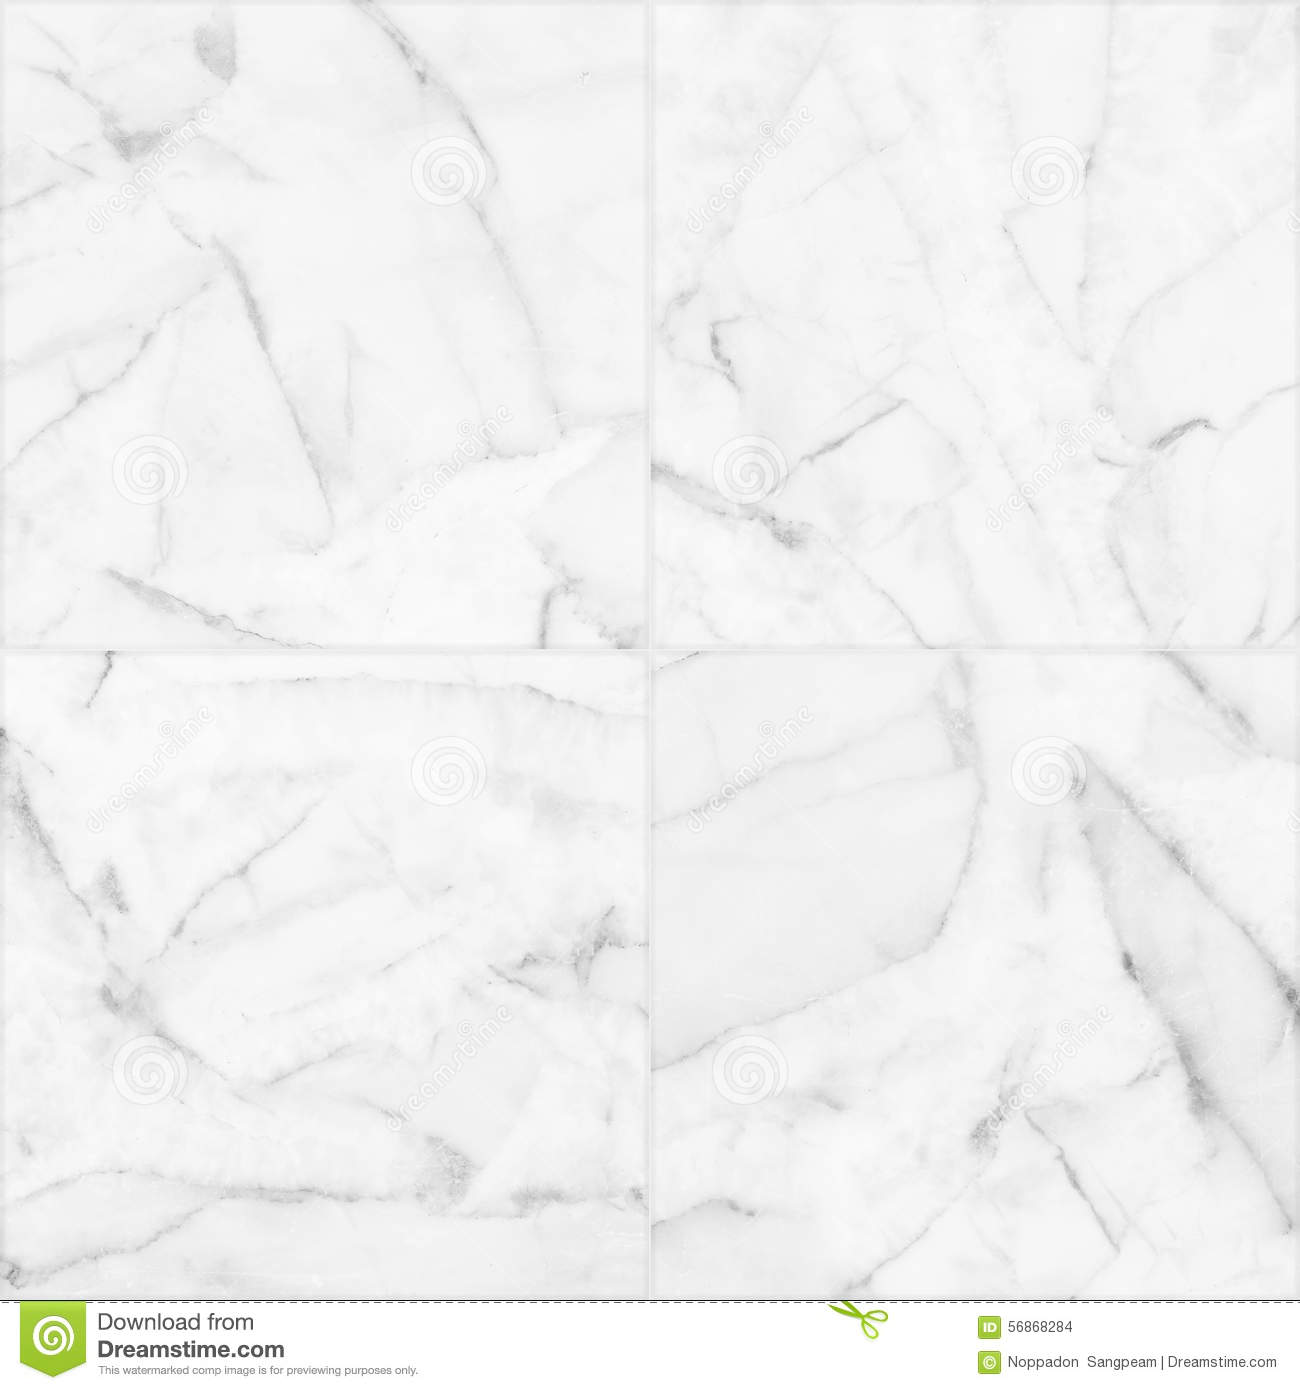 White marble tiles seamless flooring texture for background and design